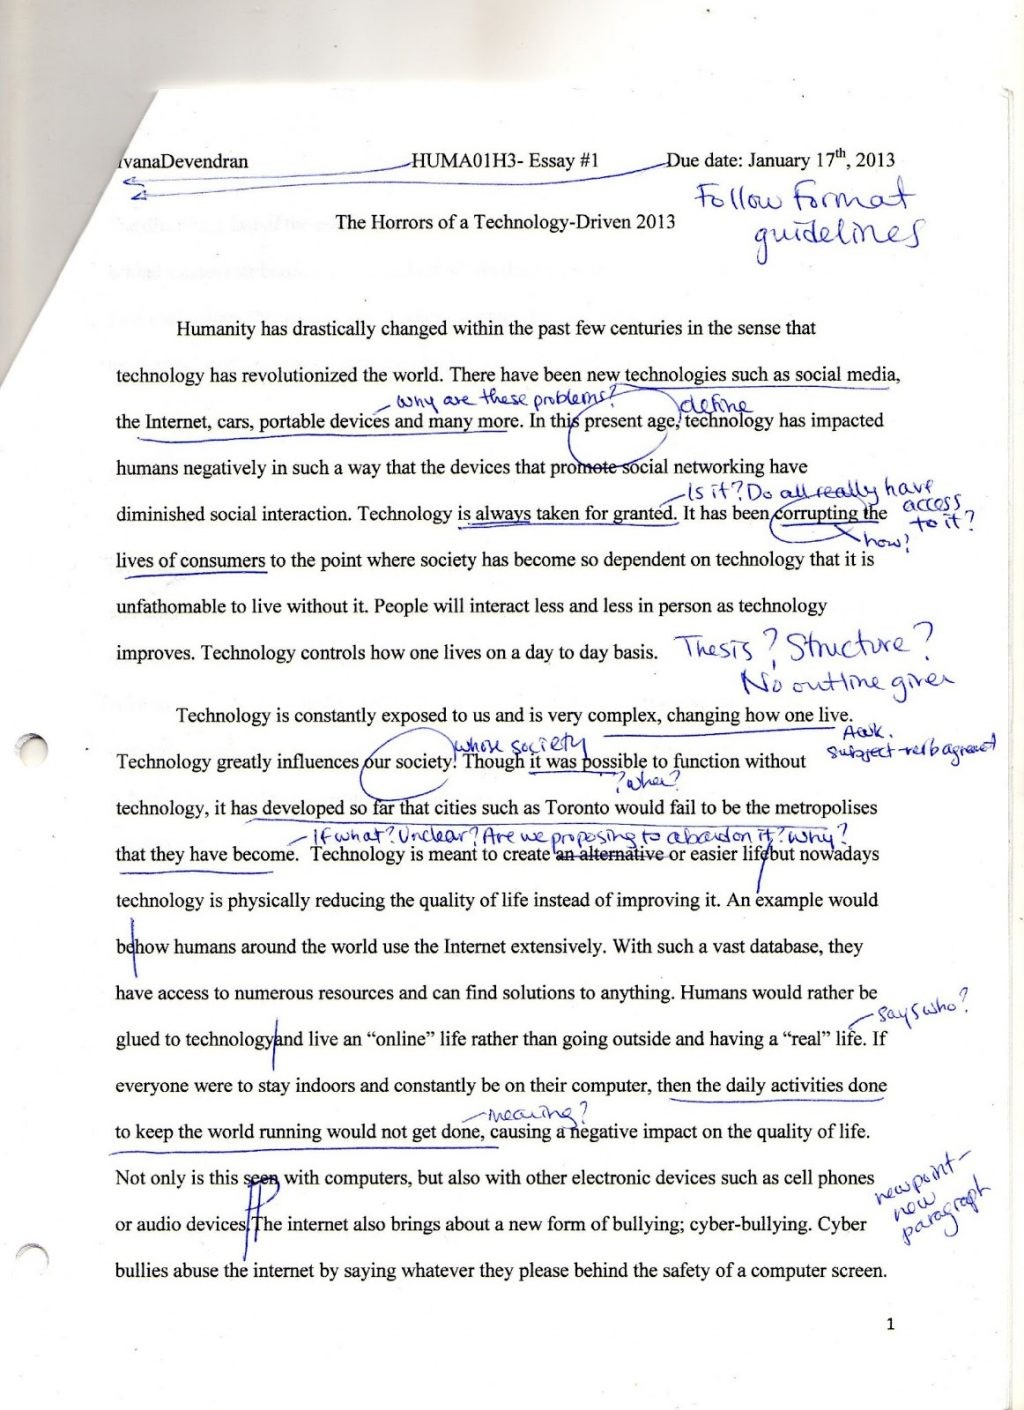 003 Research Paper Essays Music Img008 What Should You Avoid In Writing Humanities Appreciation Questions Classical History Persuasive20 1024x1410 Argumentative Frightening Topics Large